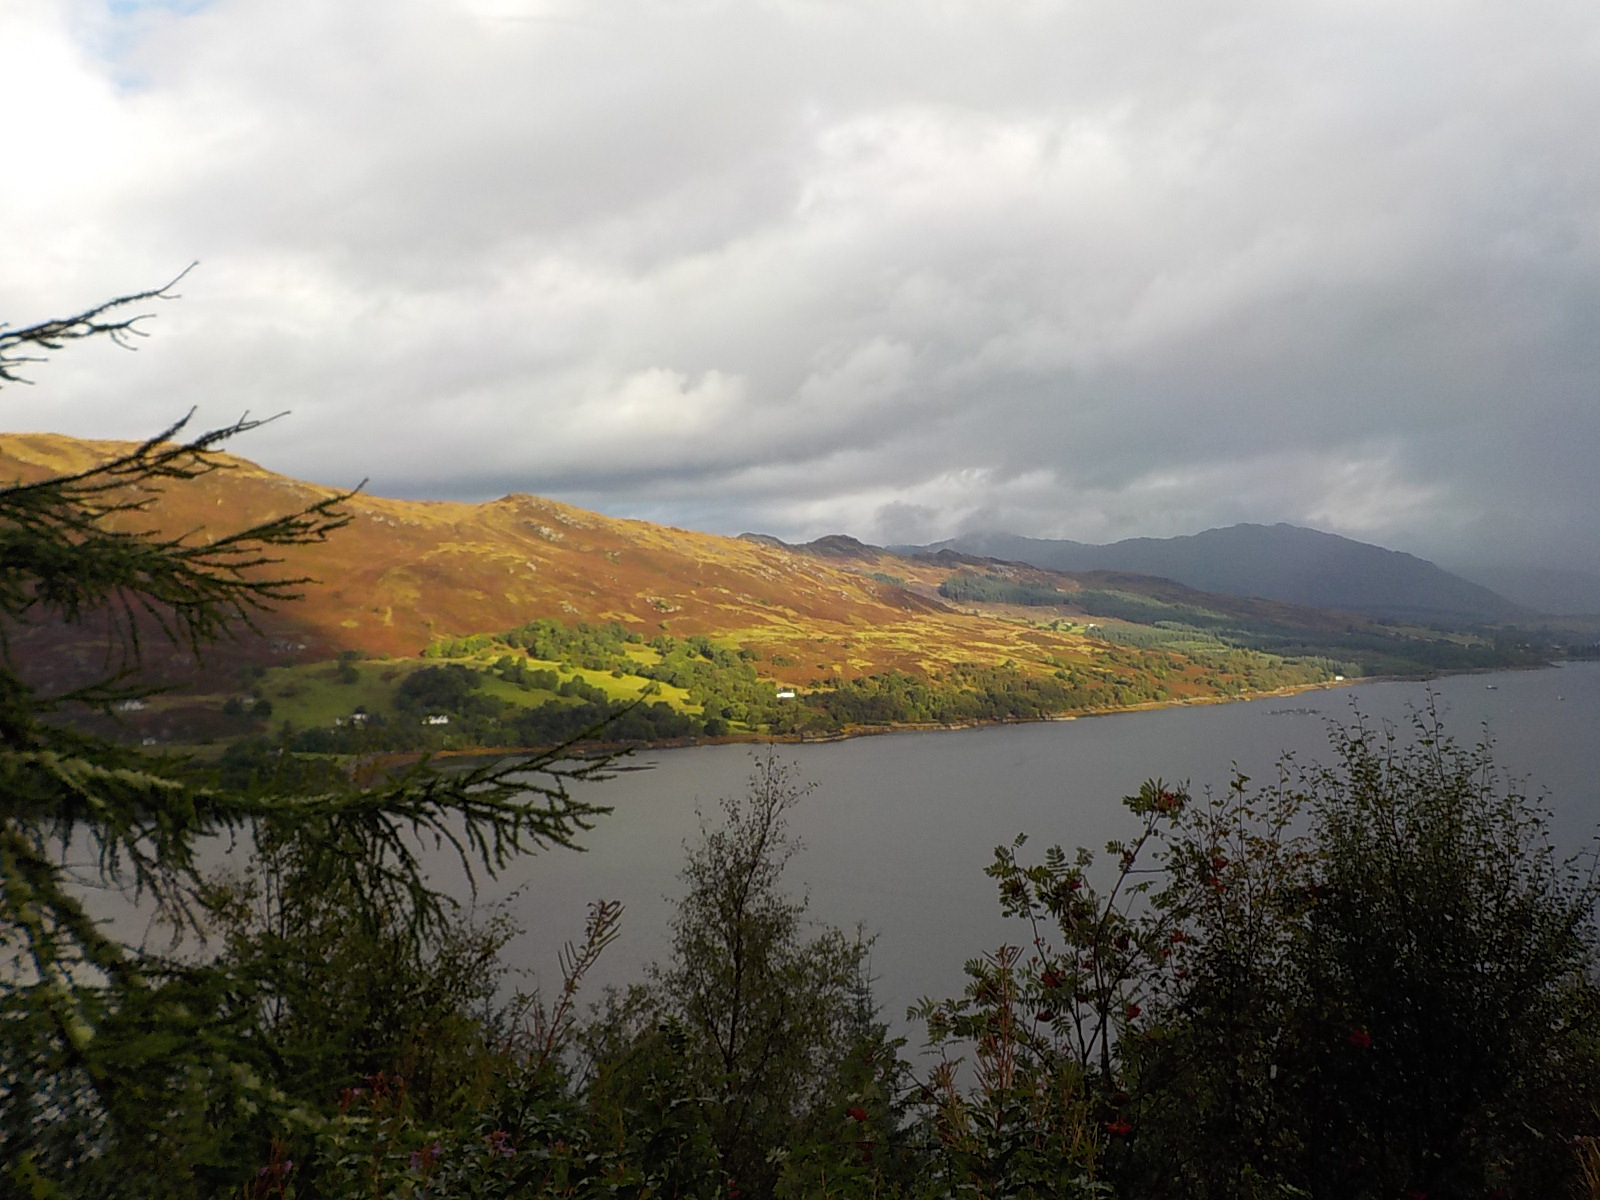 9-26-16-route-to-skye-001